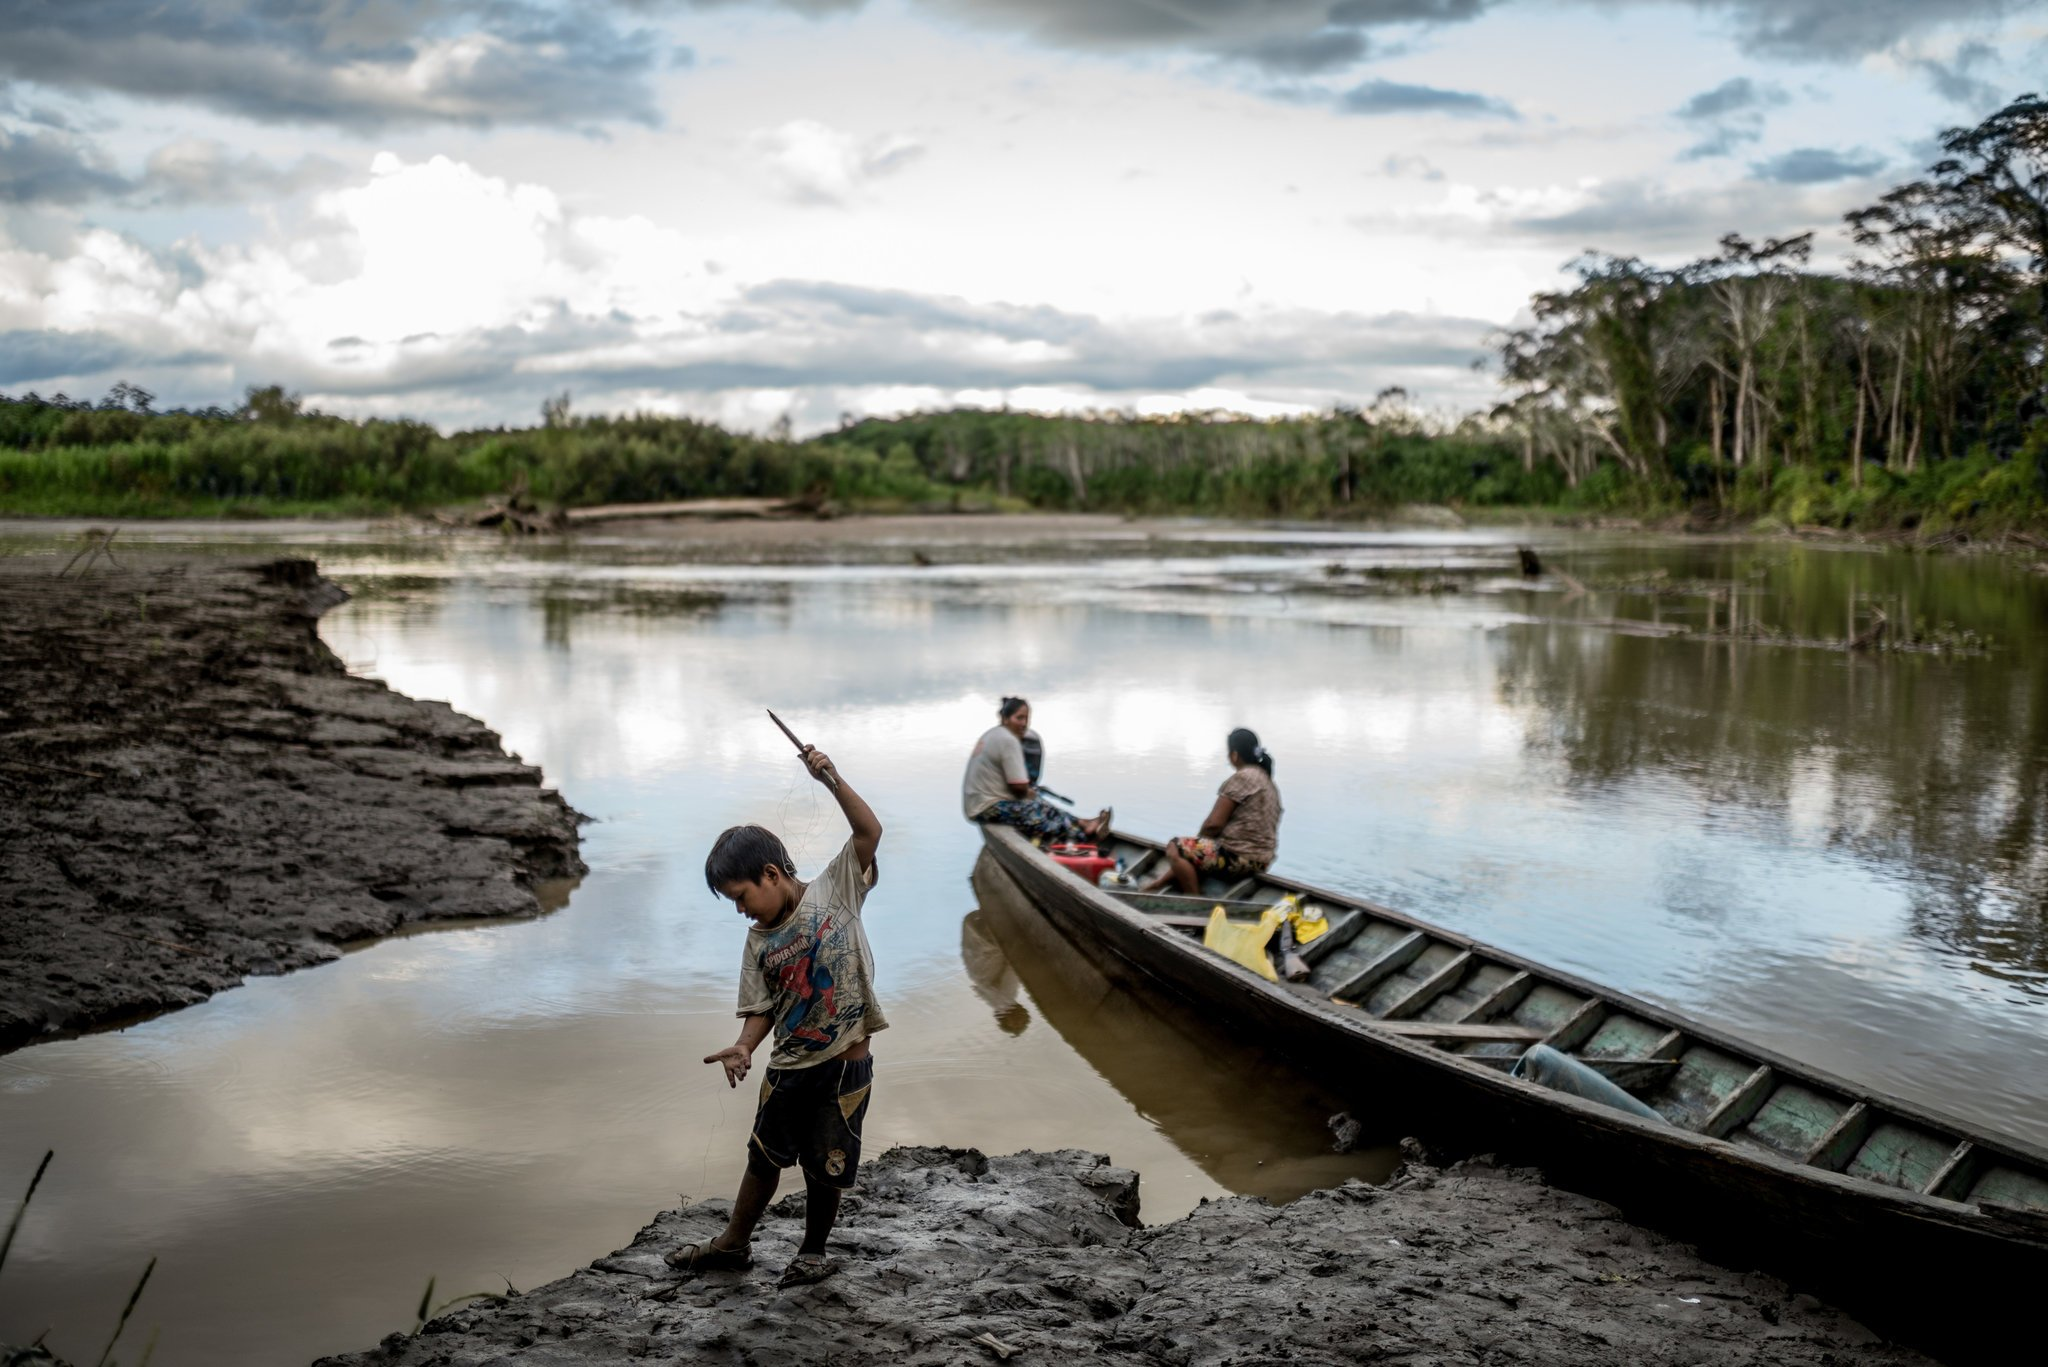 Illegal Gold #Mining in Peru both scars the land and the people #humanrights #pollution https://t.co/NlbdqBOZqI https://t.co/gCxzpnab2O